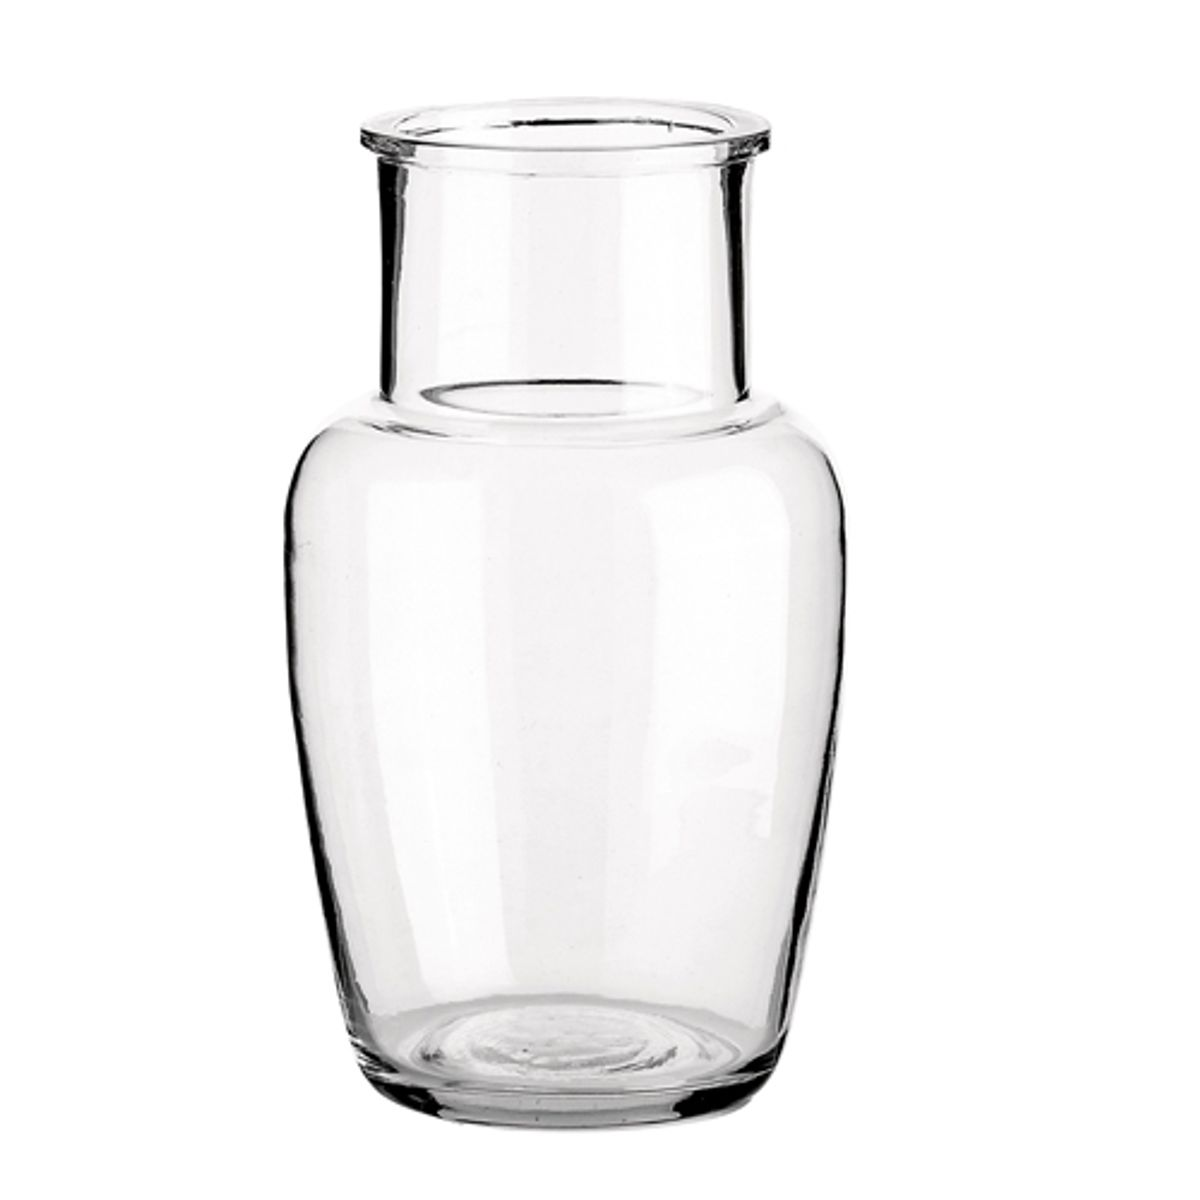 Vase en verre transparent Tine K Home - PM